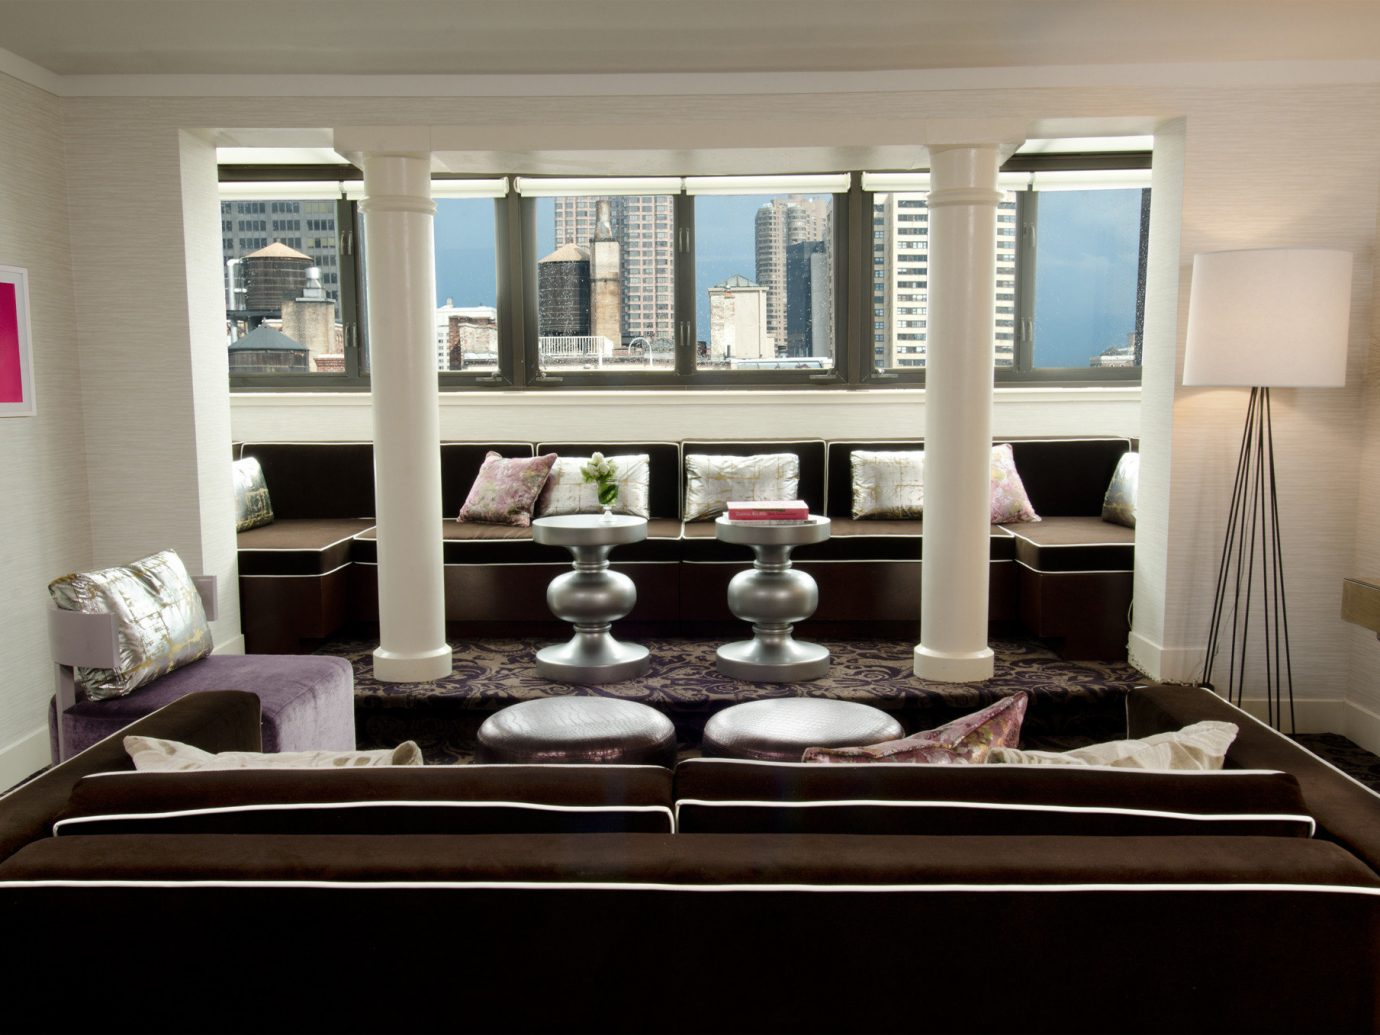 Boutique City Living Modern Trip Ideas indoor wall window living room room dining room property ceiling home interior design furniture table estate Design condominium window covering decorated